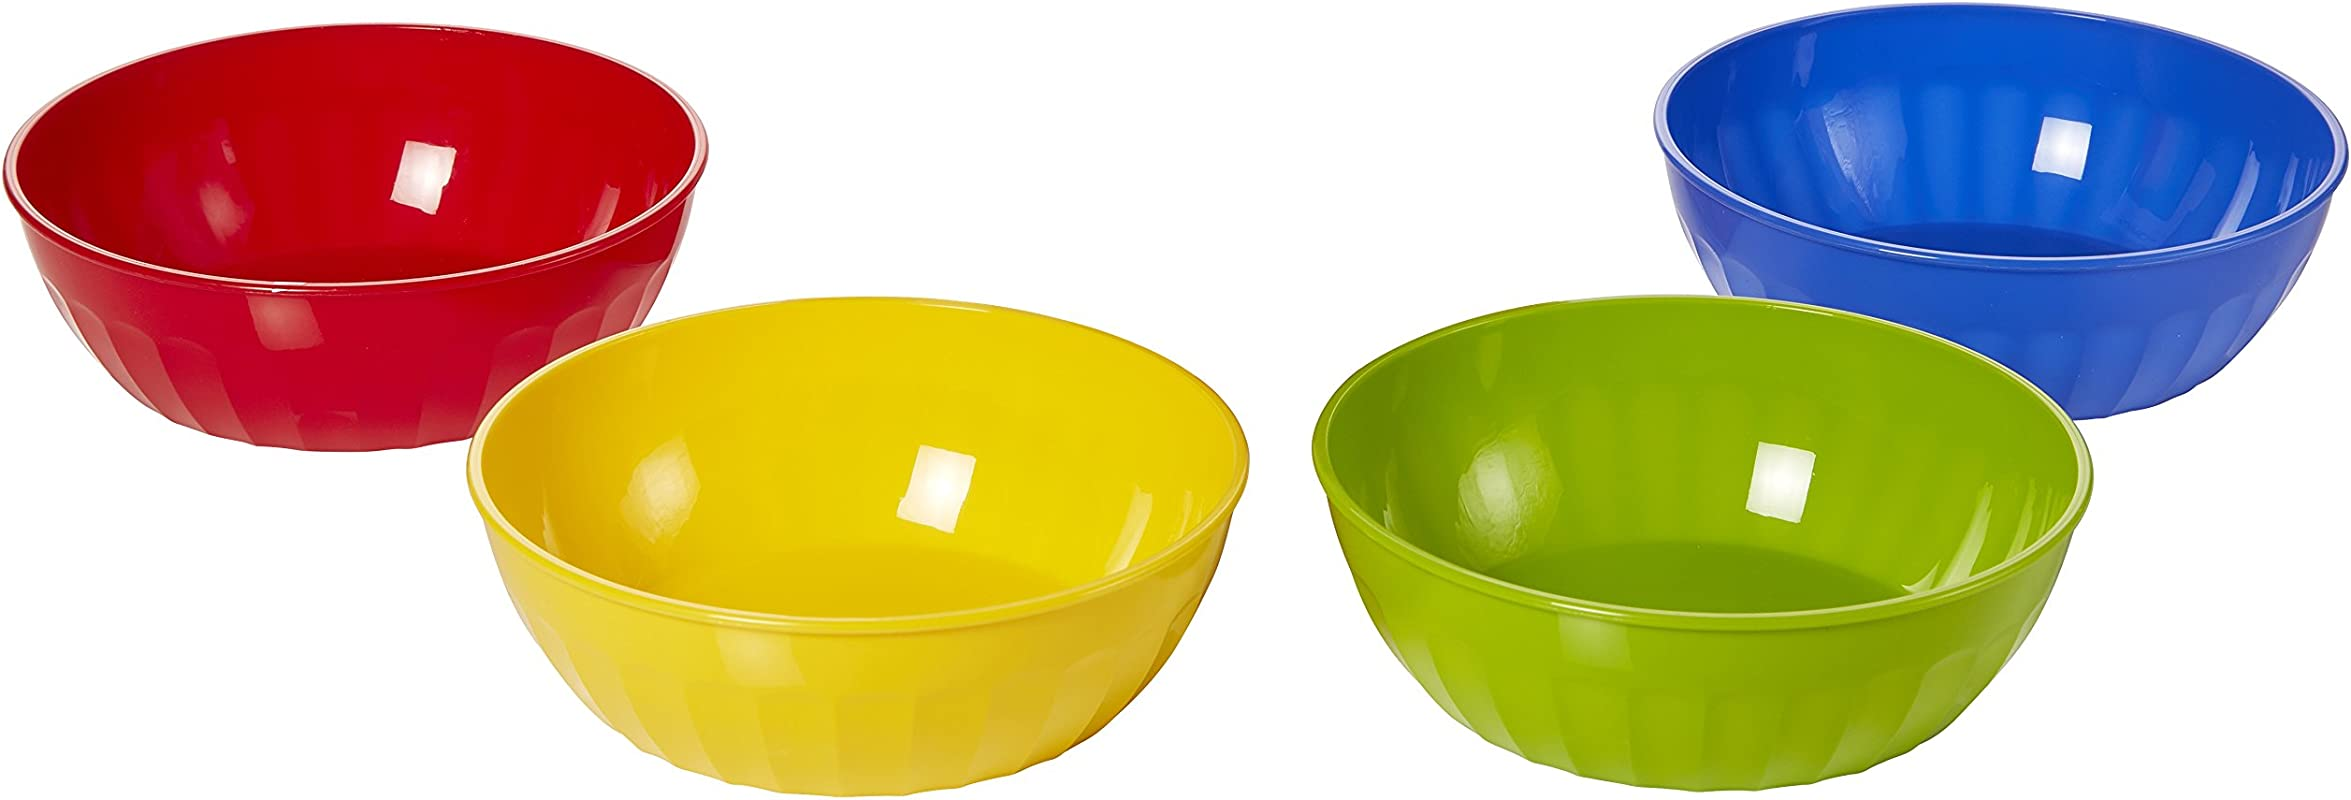 Arrow Home Products 29244 16 Ounce Bowls 16 Oz 4 Pack Assorted